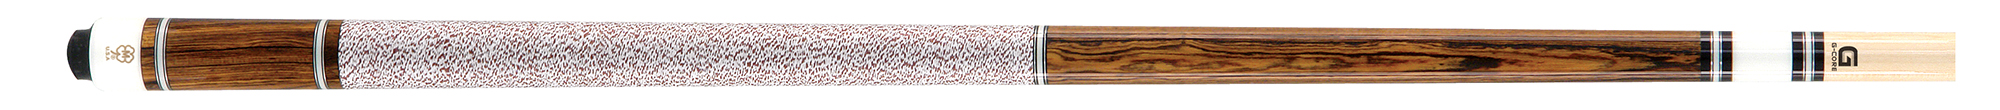 PK3015: McDermott G224 Bocote pool Gewicht: 19Oz #1